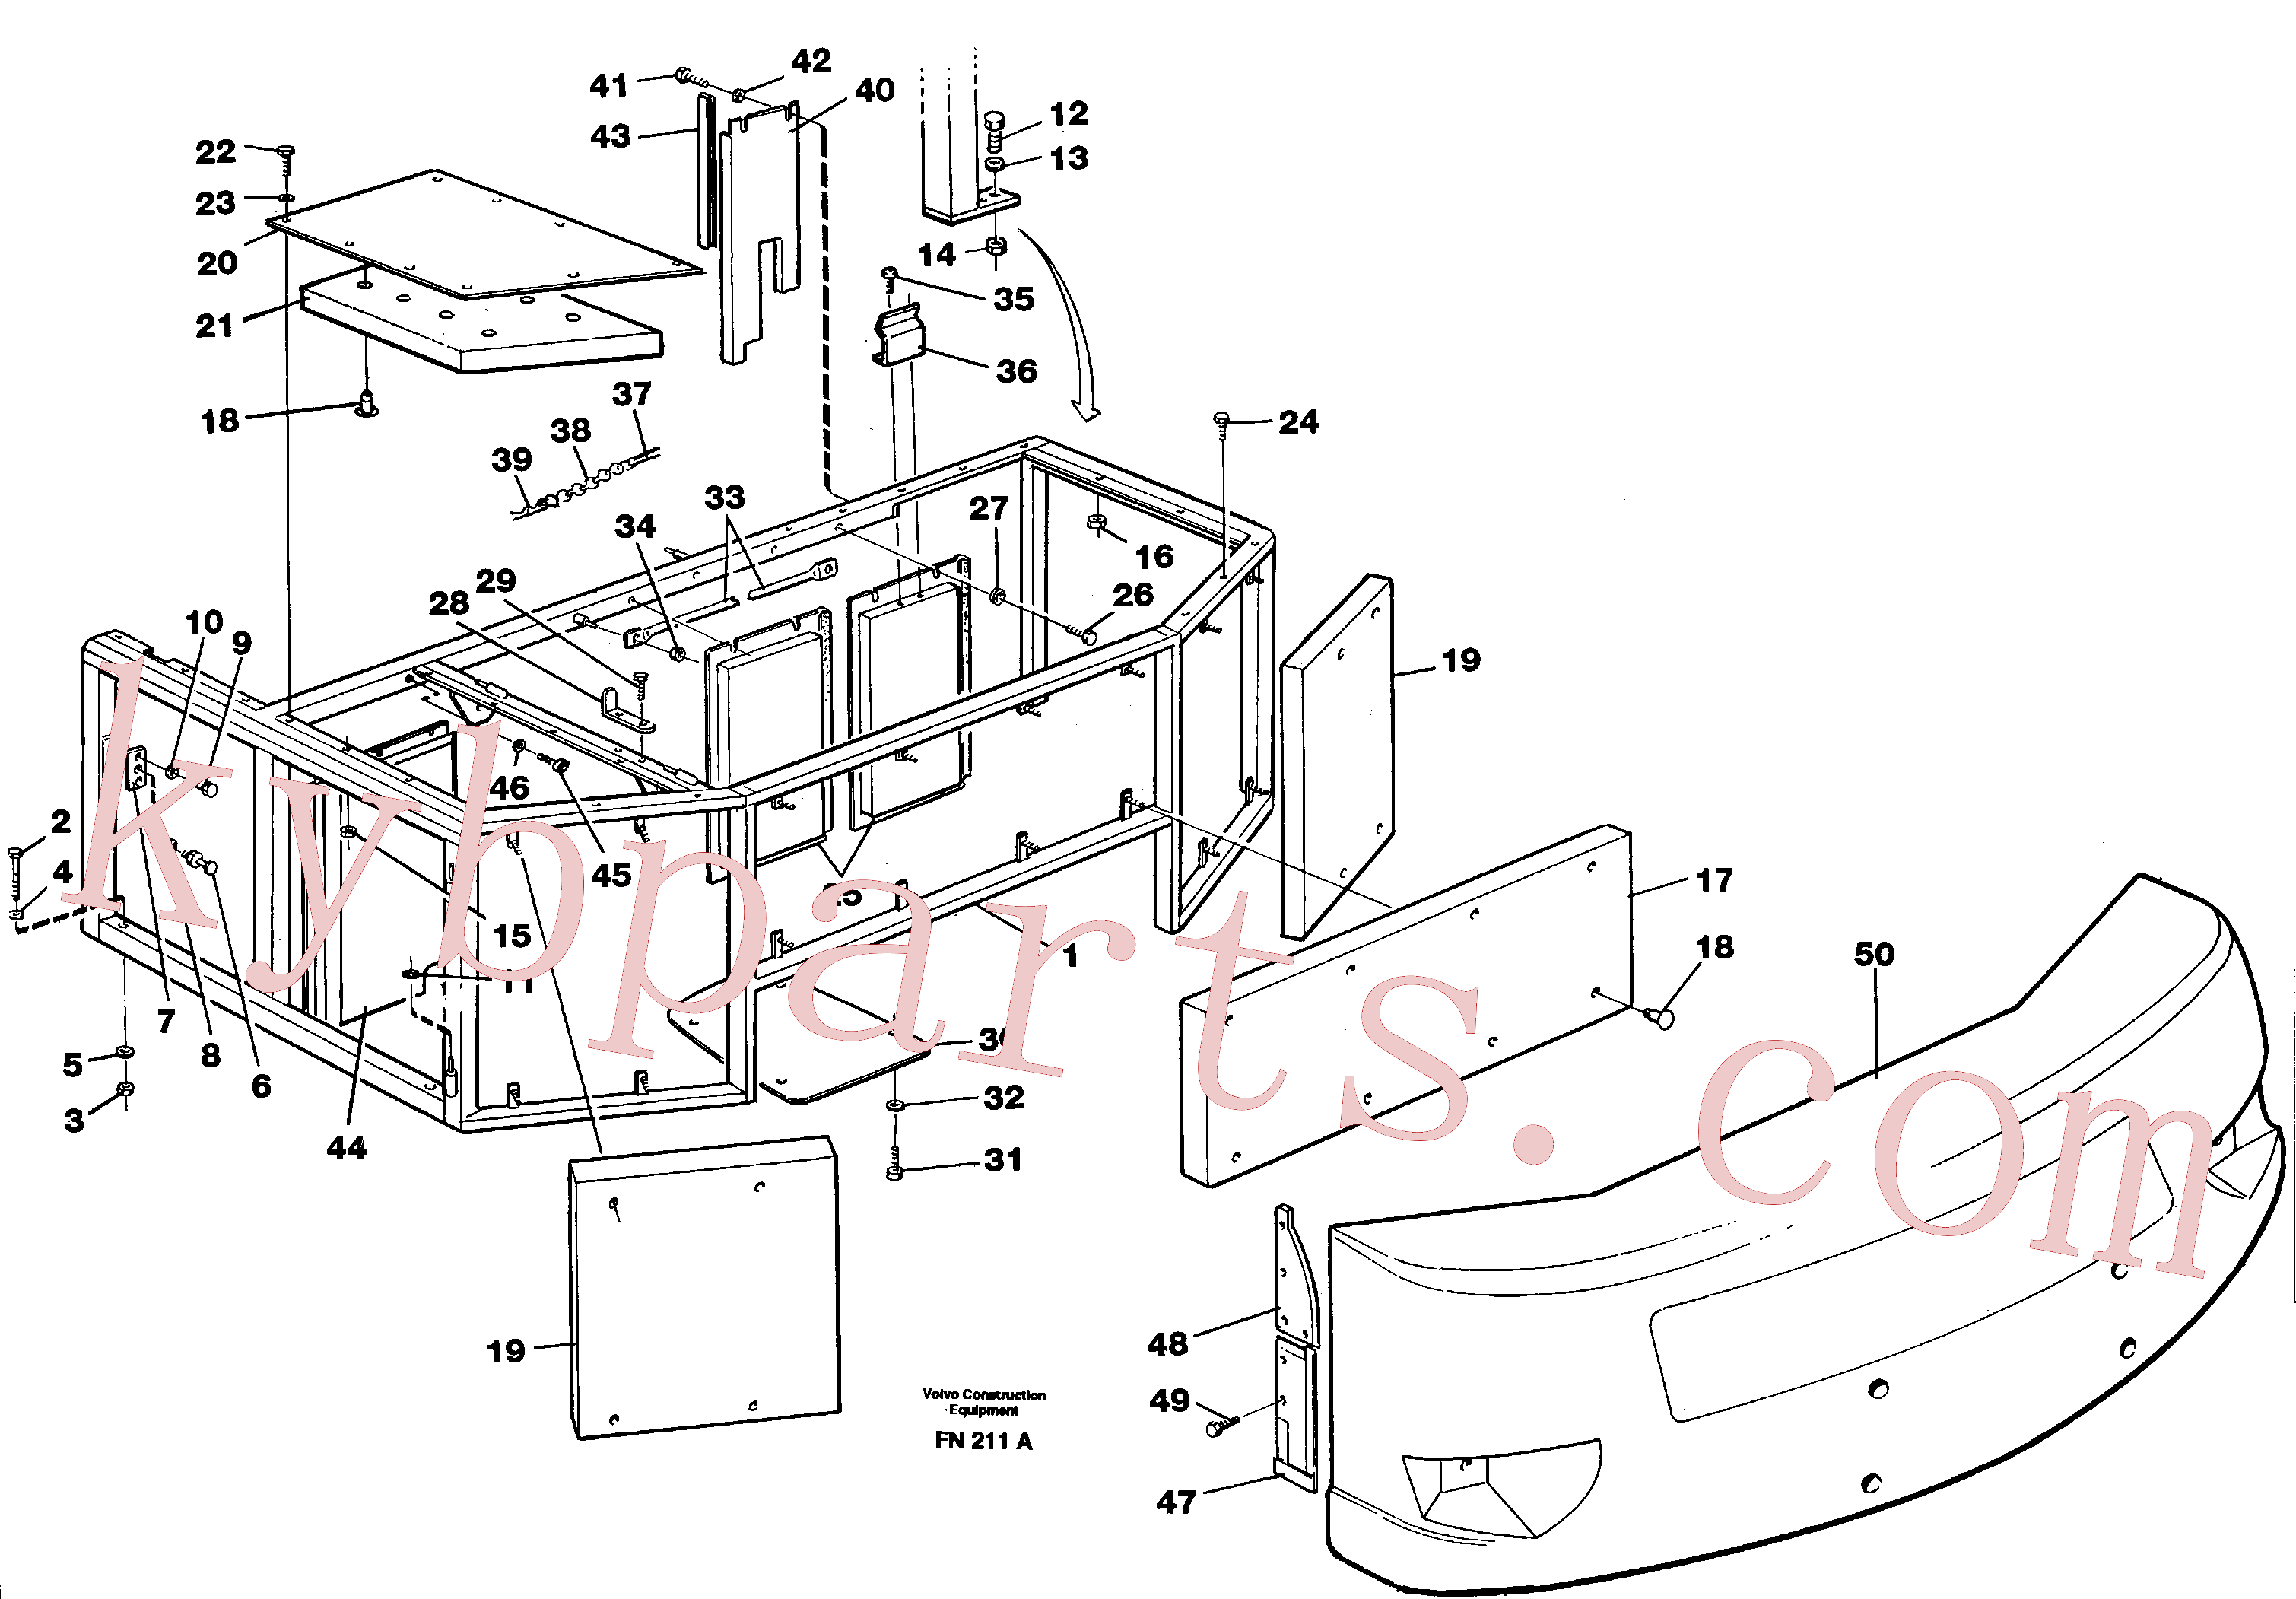 VOE4880191 for Volvo Support, cover plates, rear(FN211A assembly)